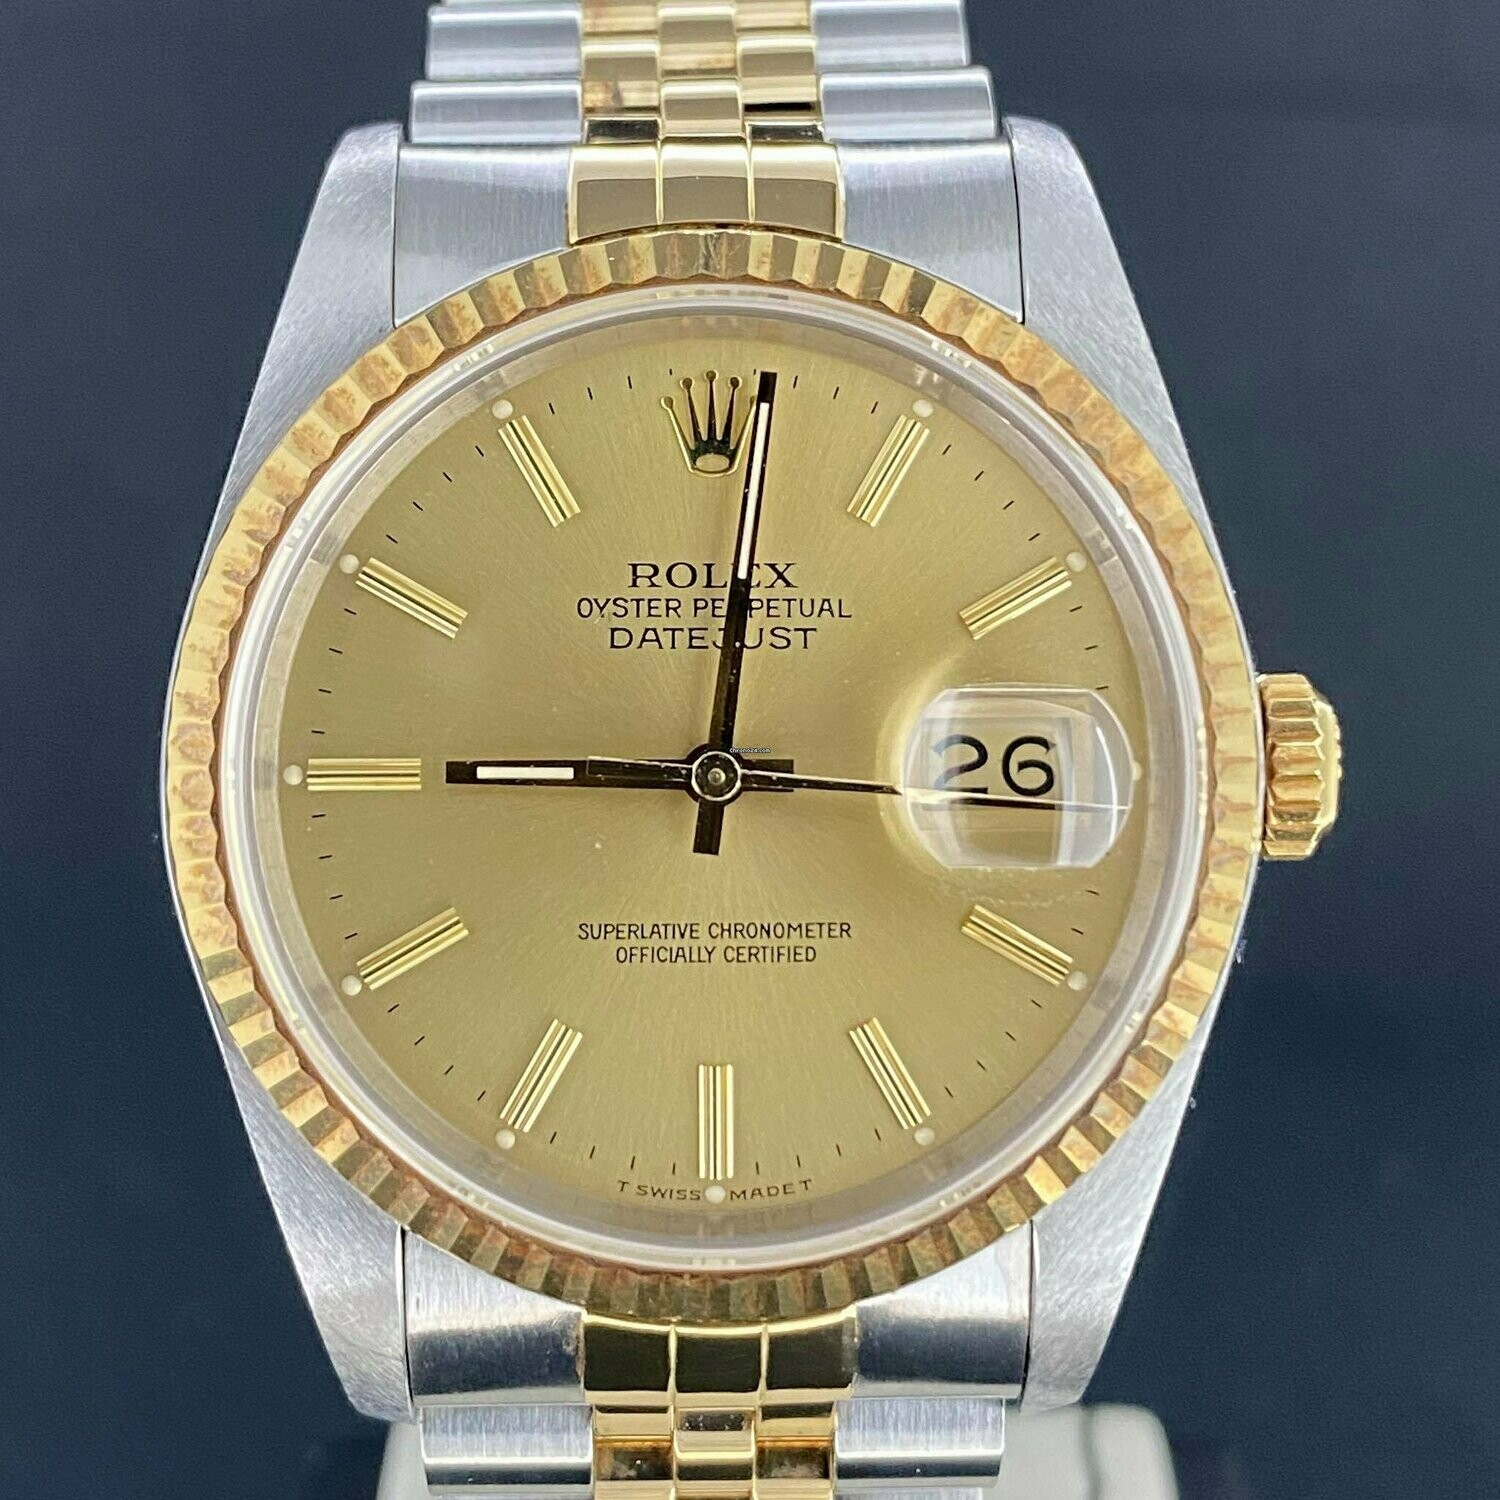 Rolex Datejust 36MM Yellow Gold/Steel Jubilee Fluted Gold Stick Dial B&P1989 Like New IMPECCABLE